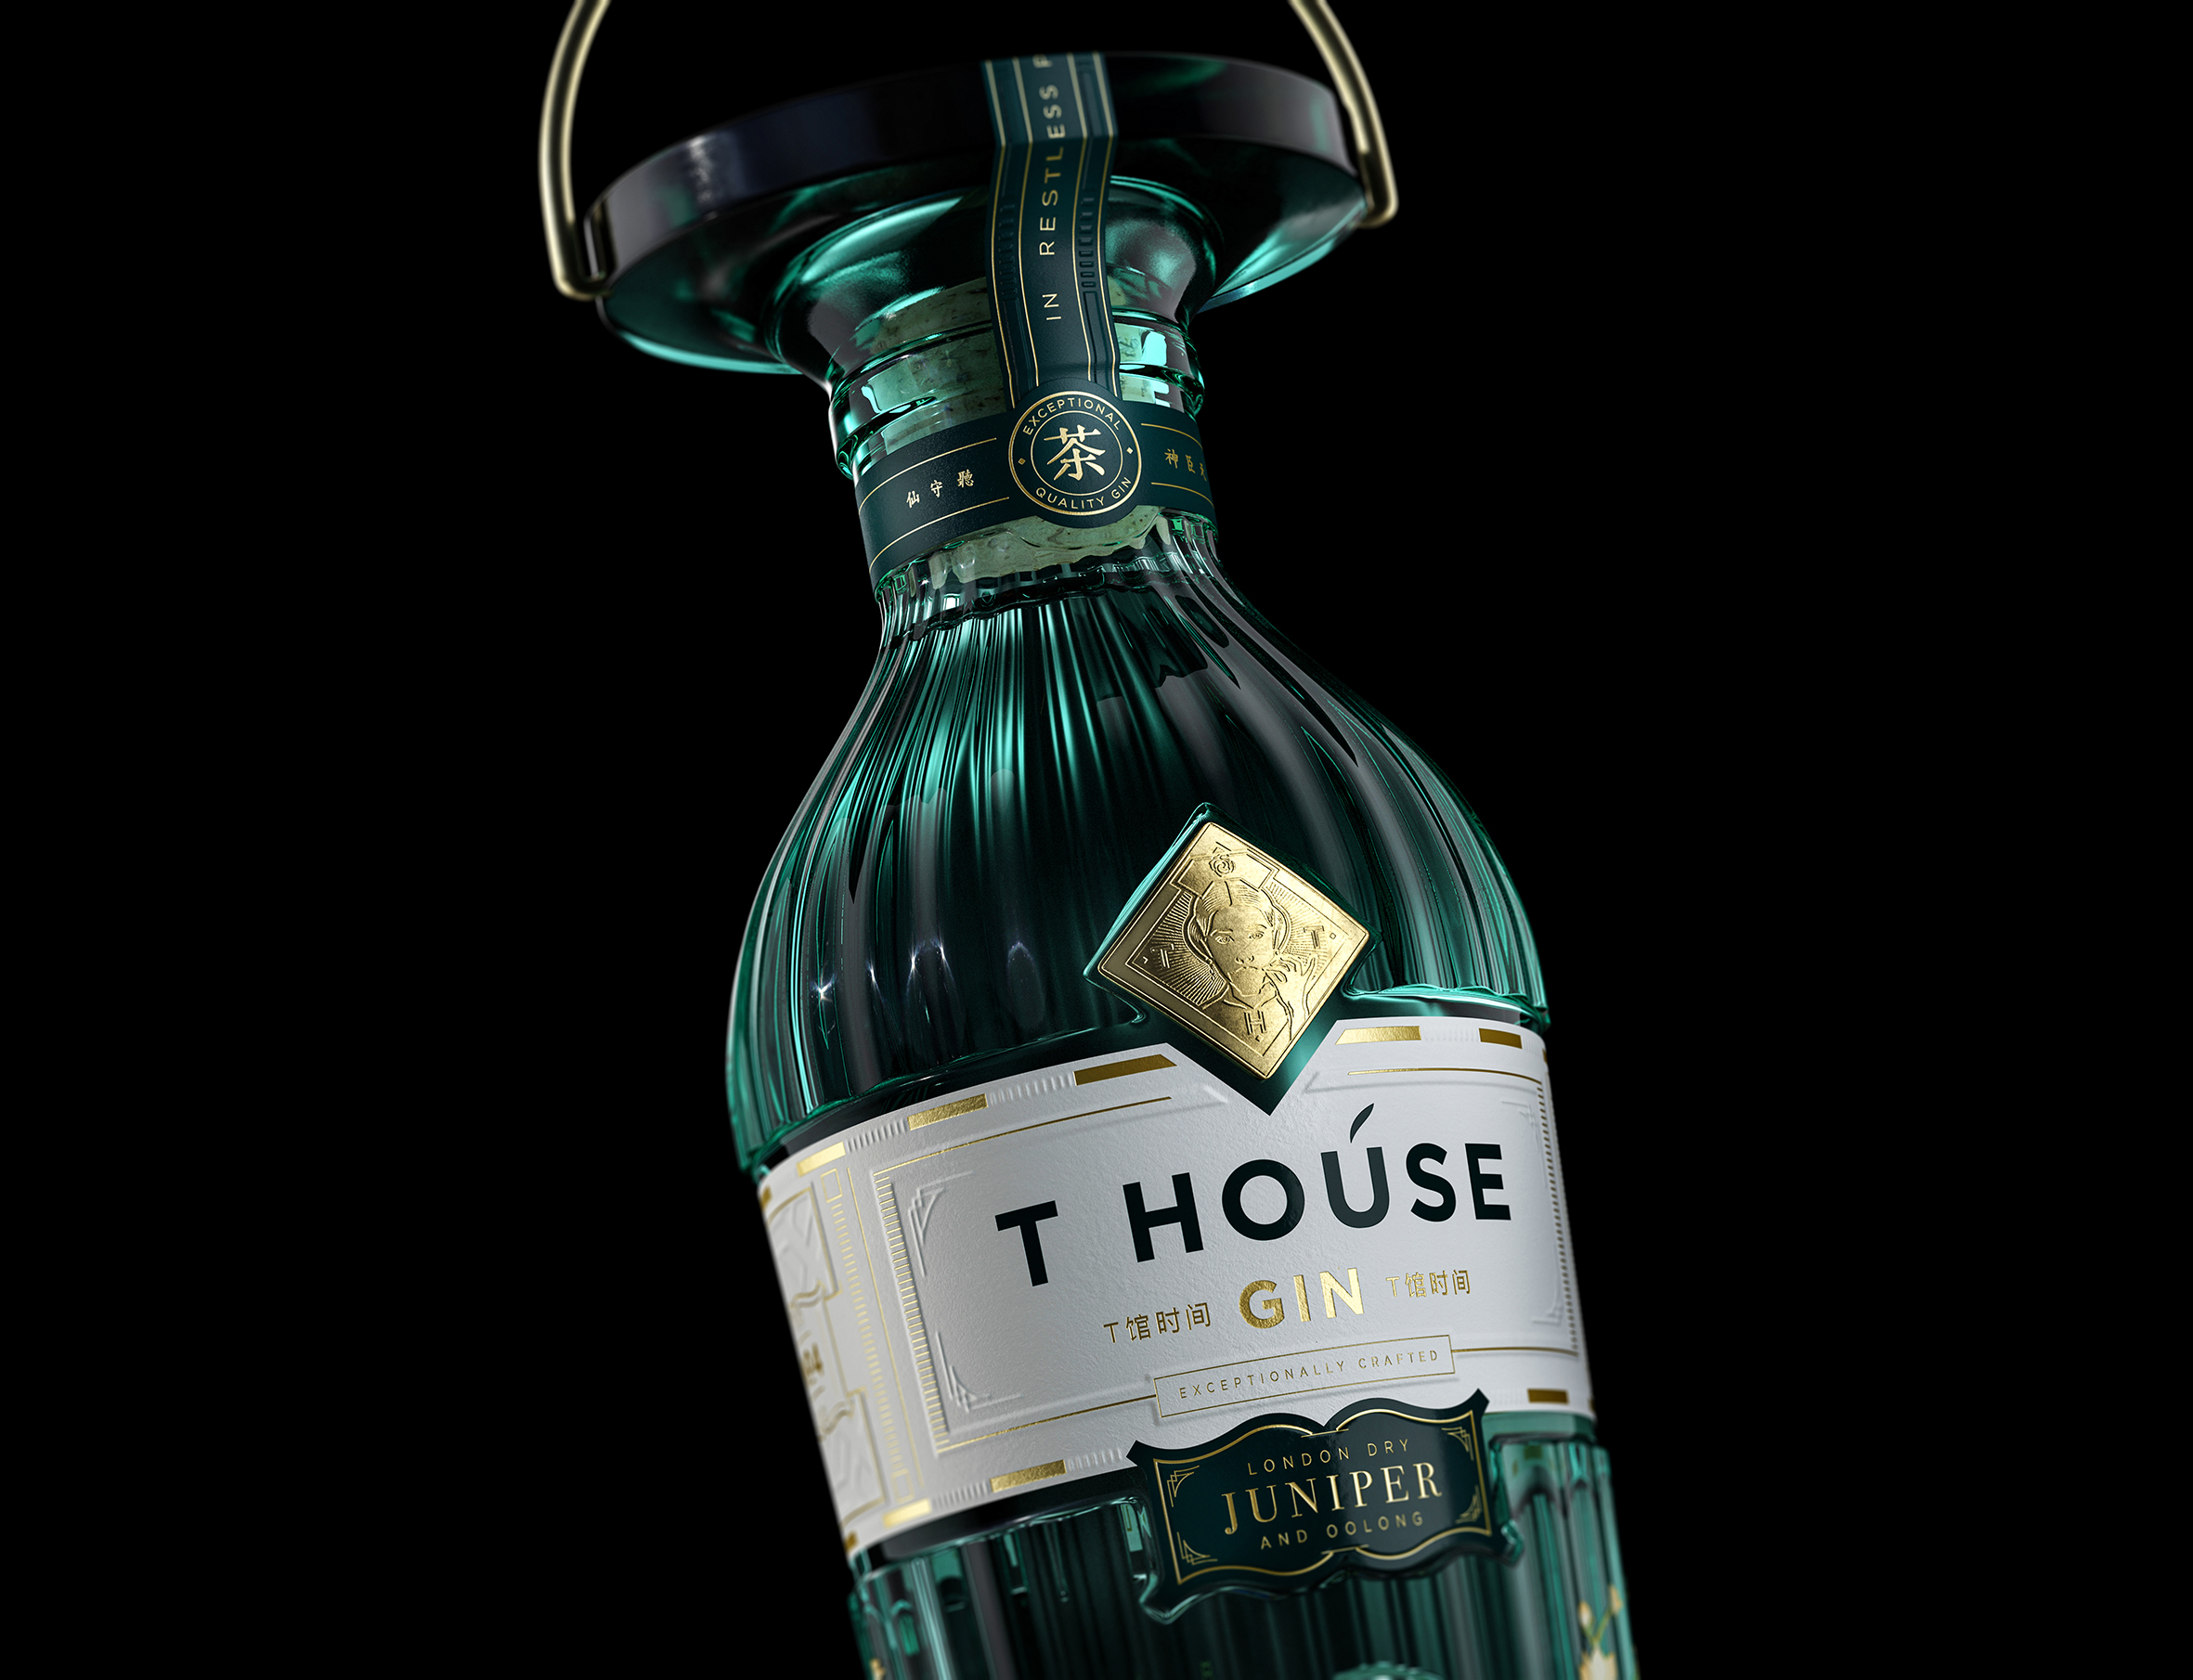 T House Gin